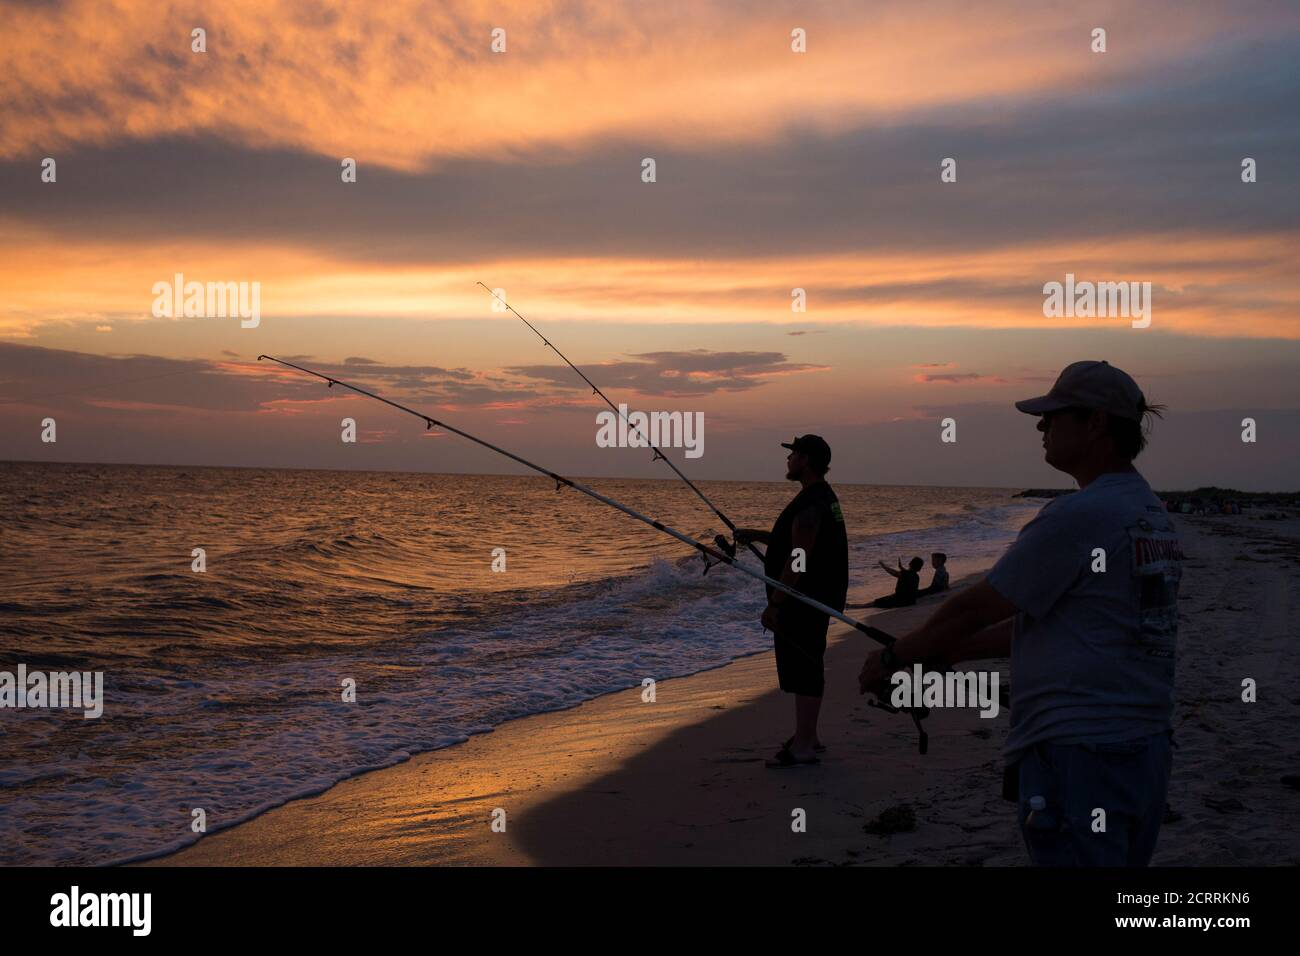 Visitors fish along a beach at sunset on Tangier Island, Virginia, U.S., on August 3, 2017.  REUTERS/Adrees Latif Stock Photo